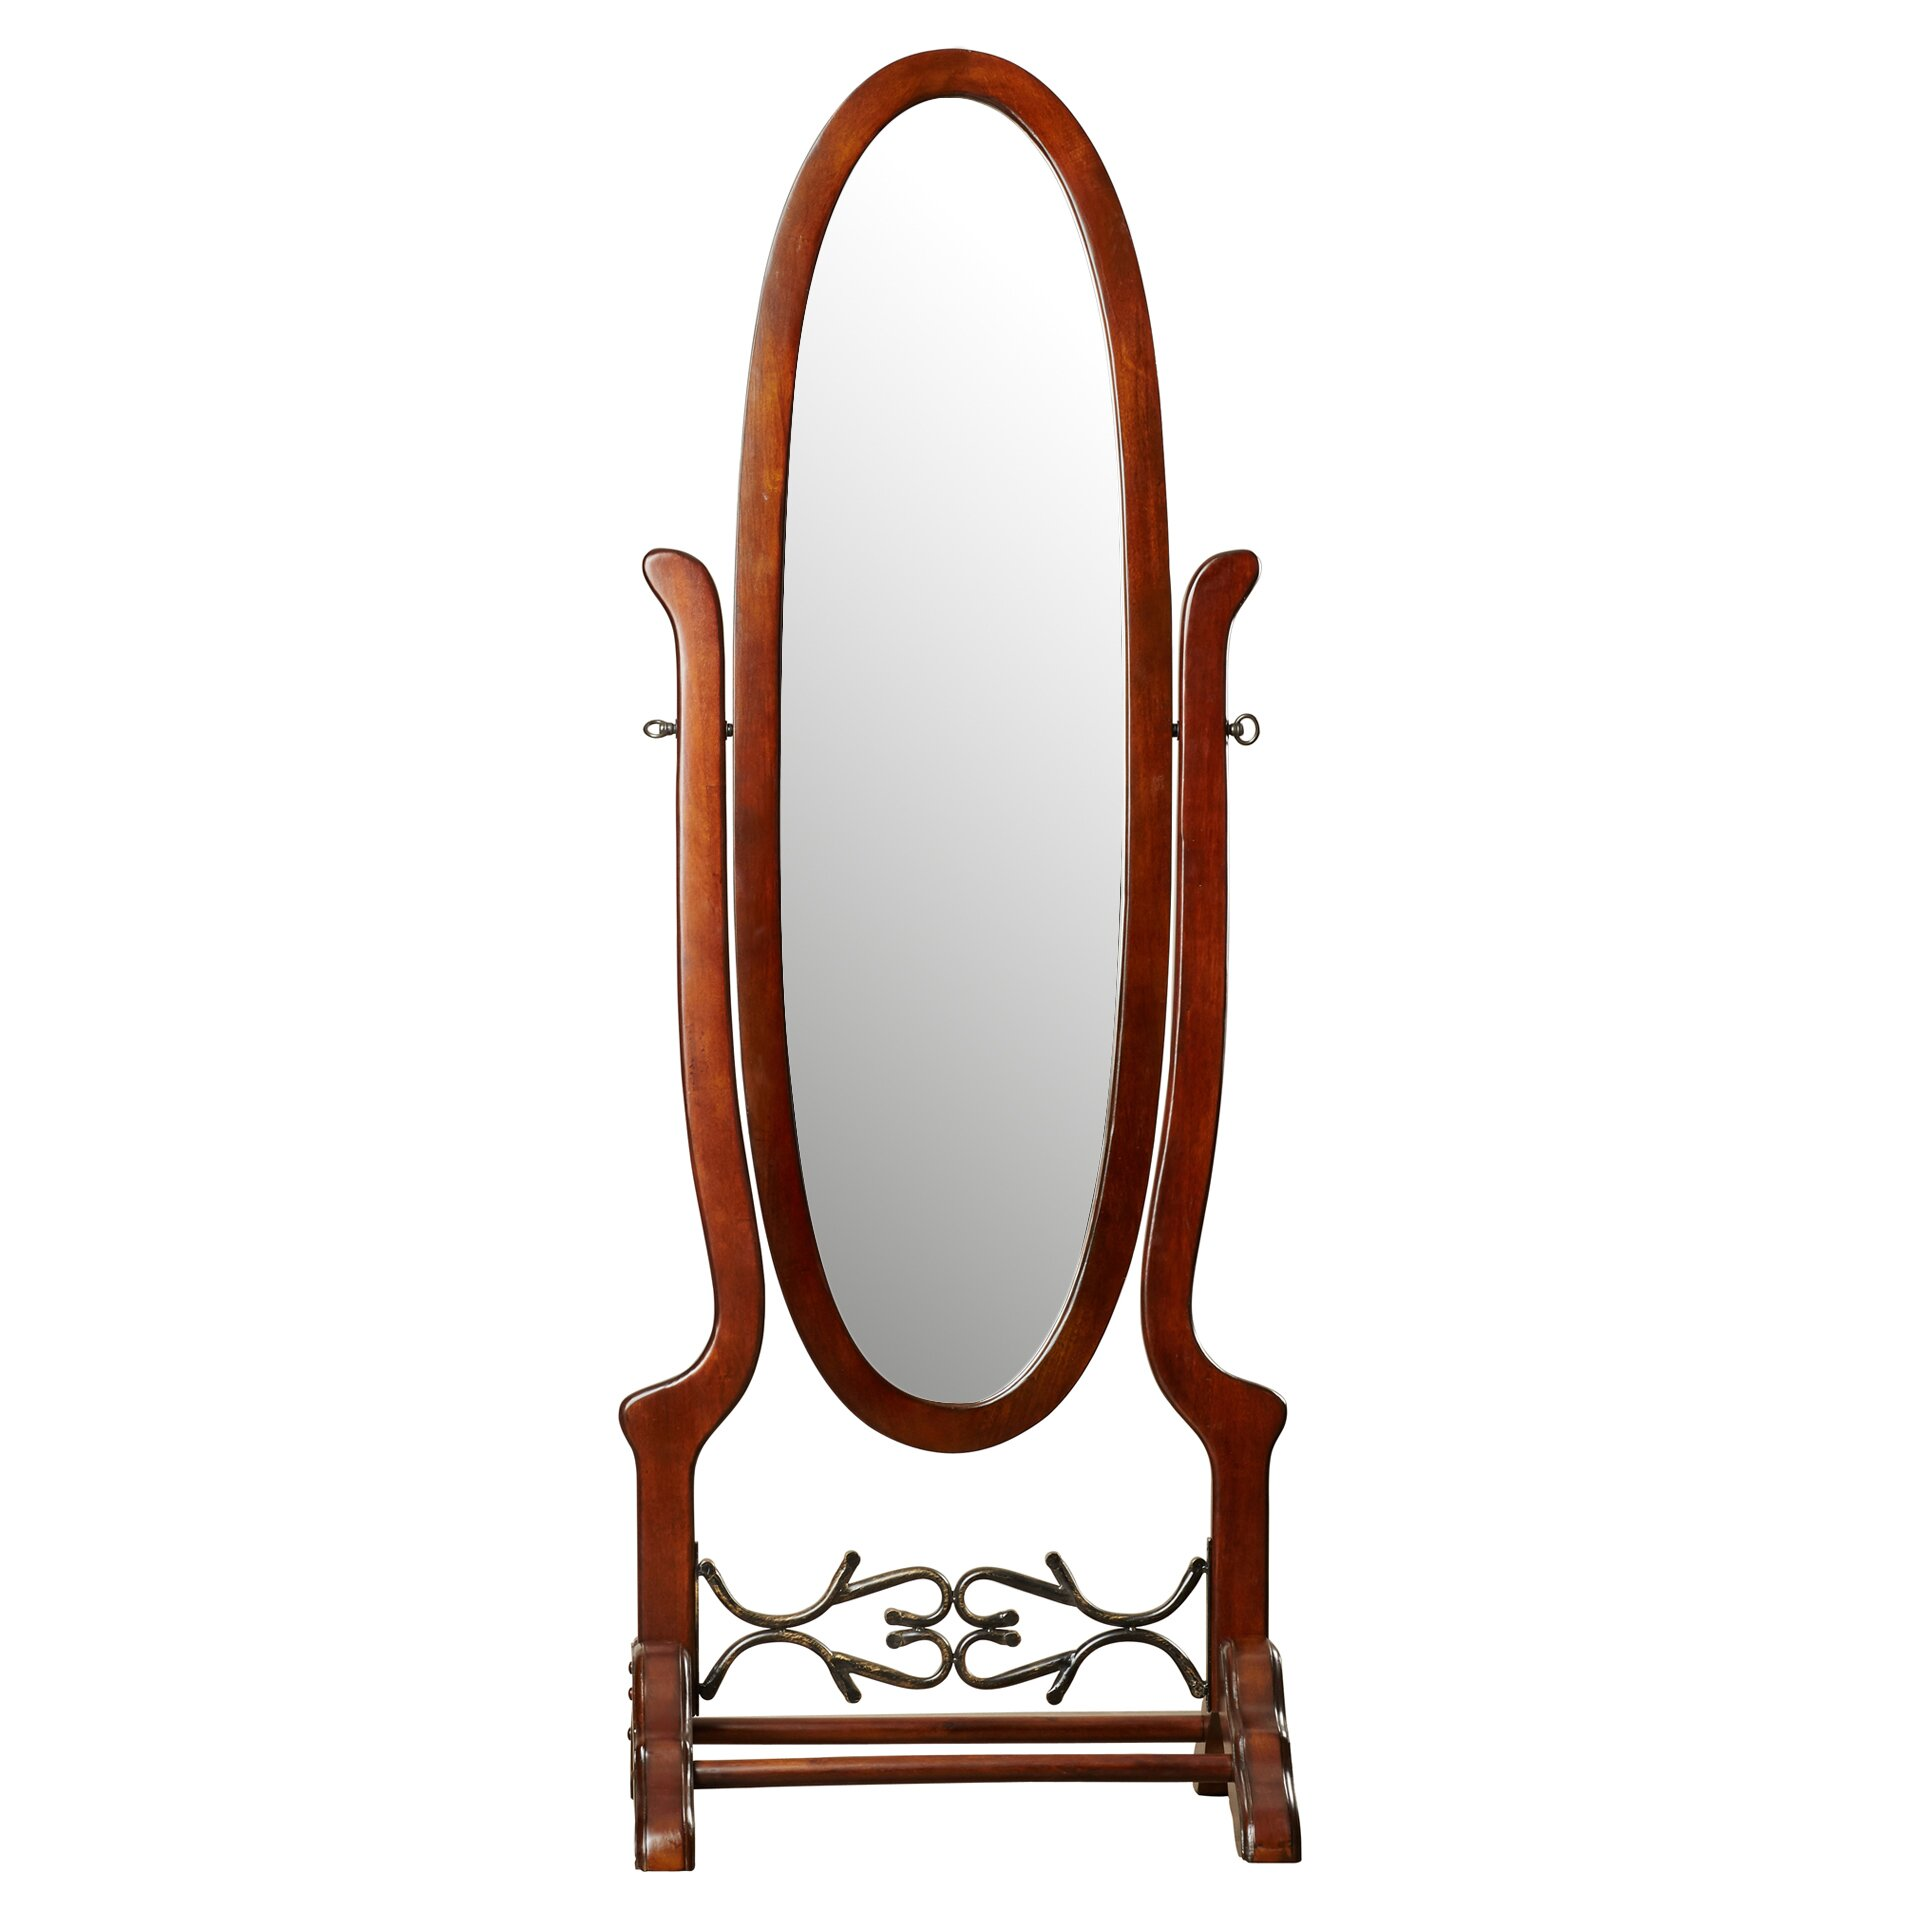 Darby home co frowseloure cheval mirror reviews for Cheval mirror